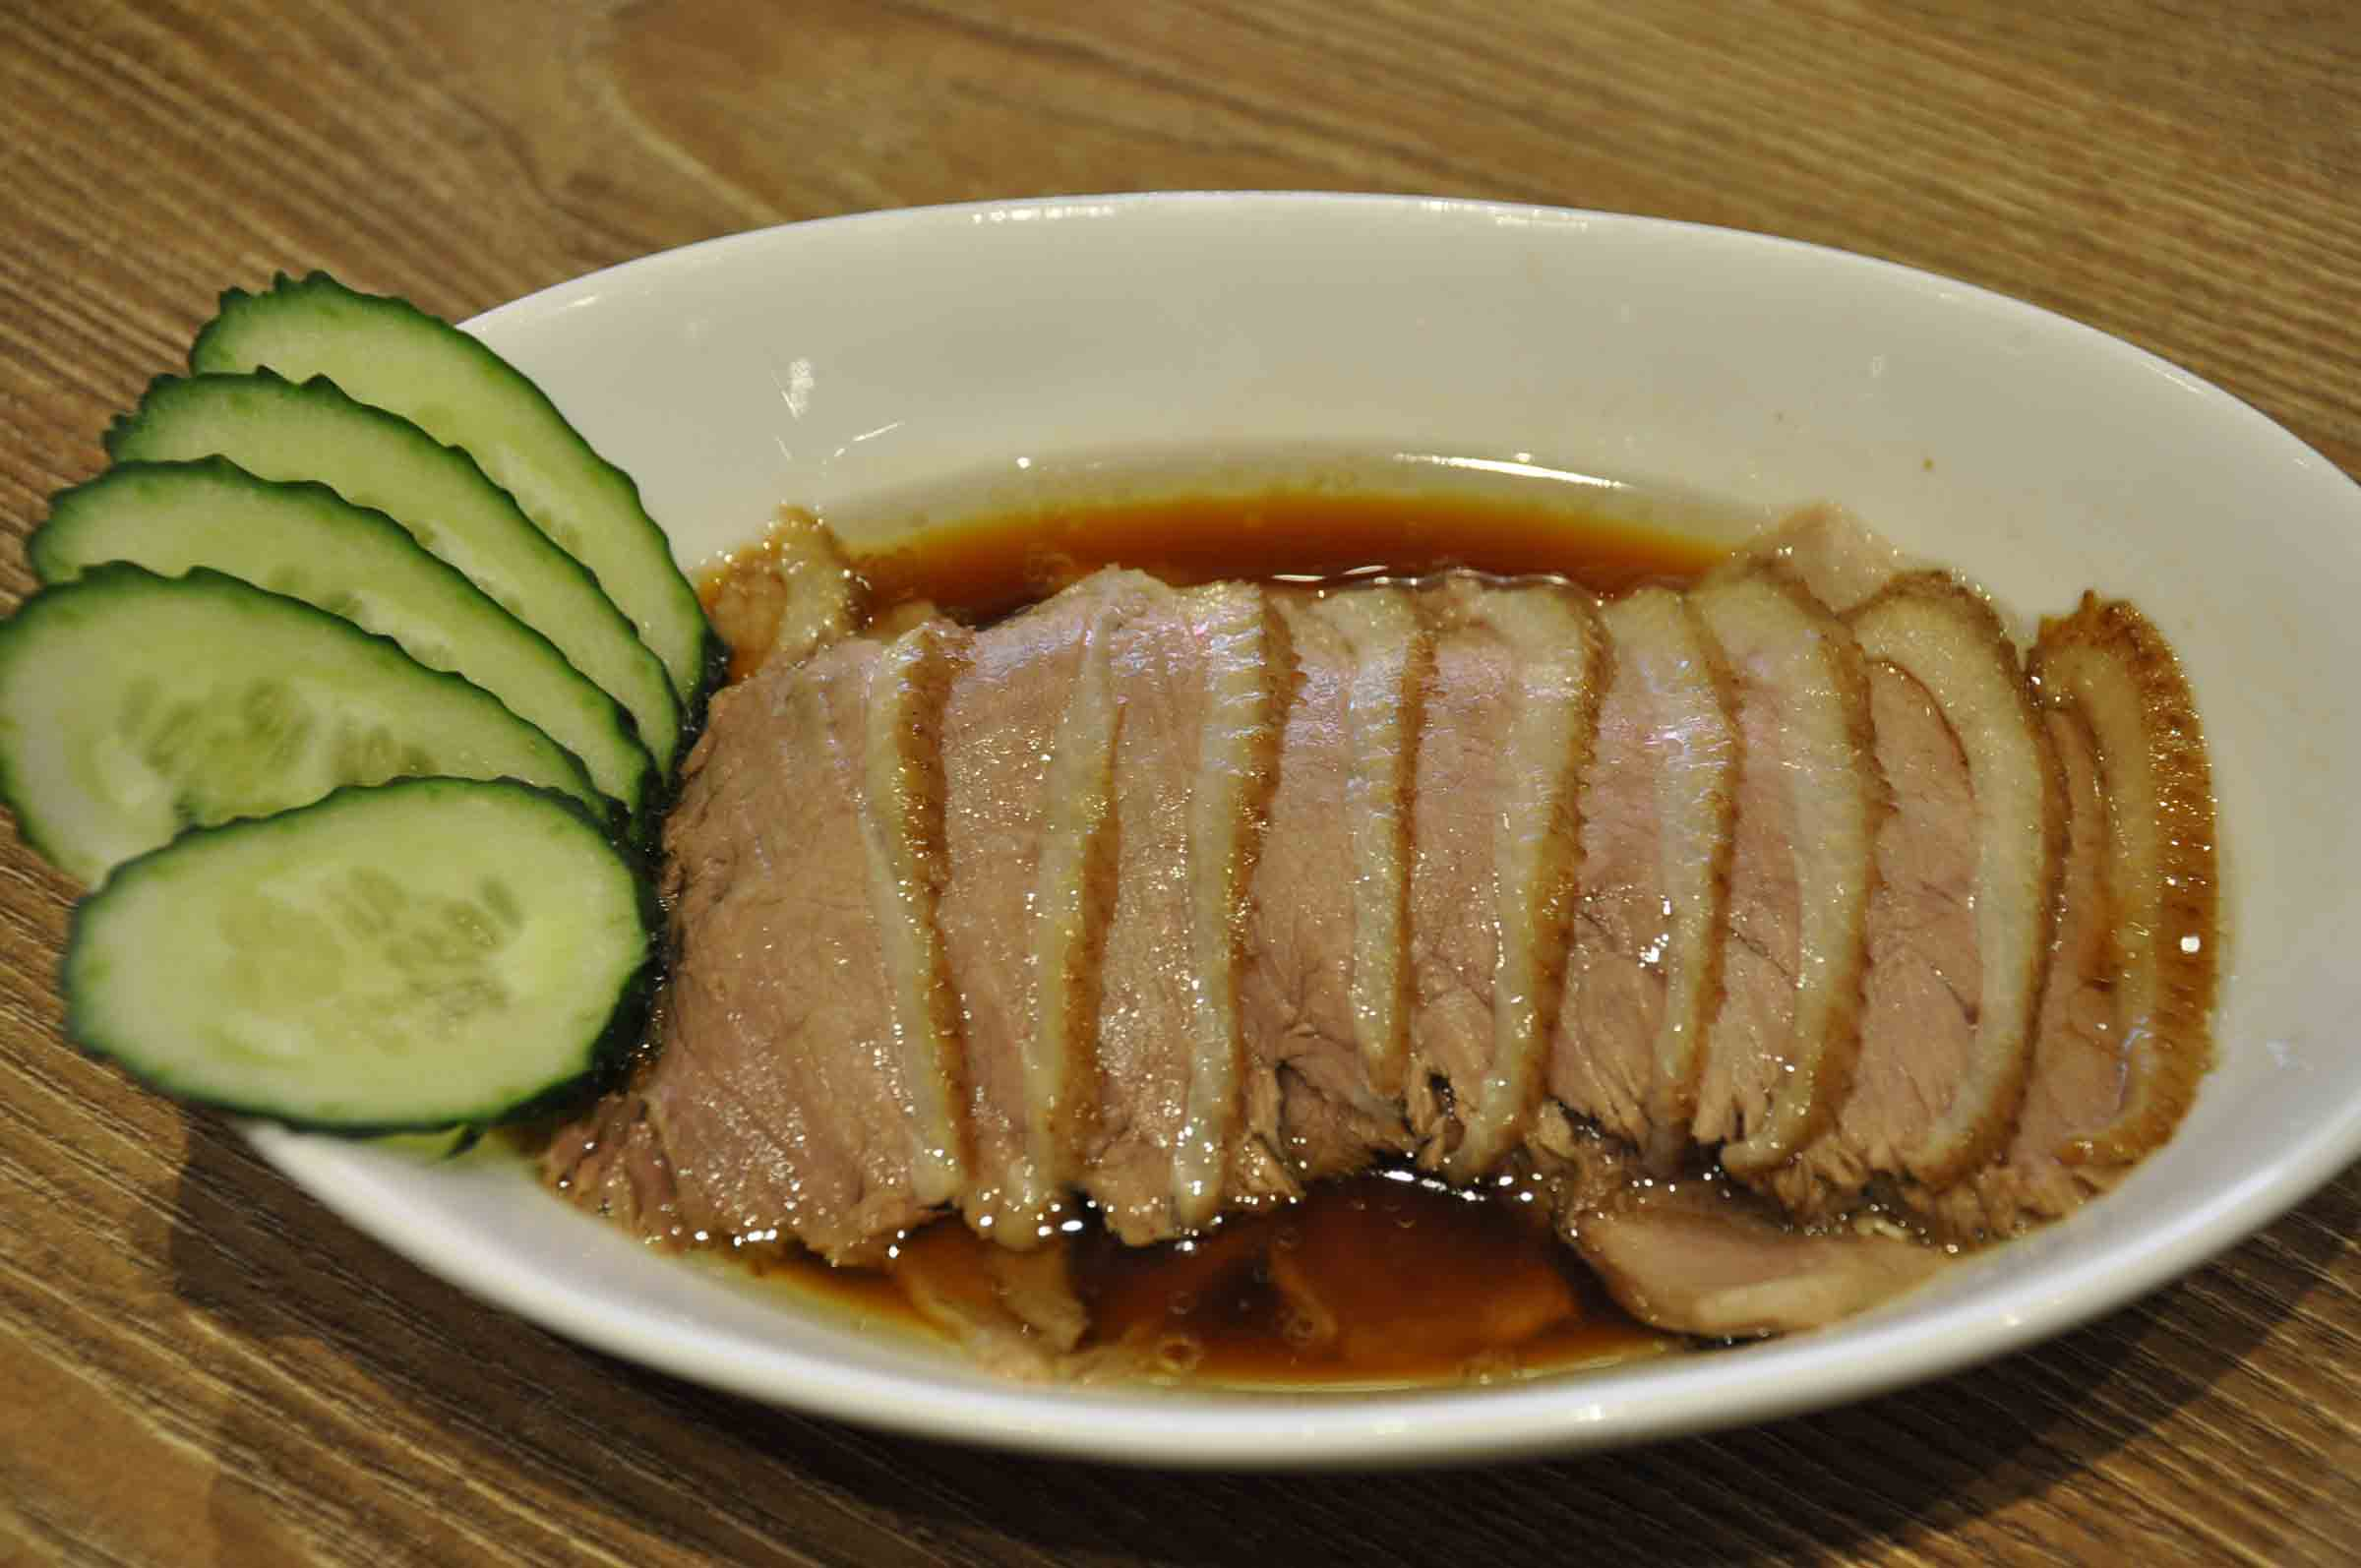 Hung's Delicacies: Marinated Goose Slices